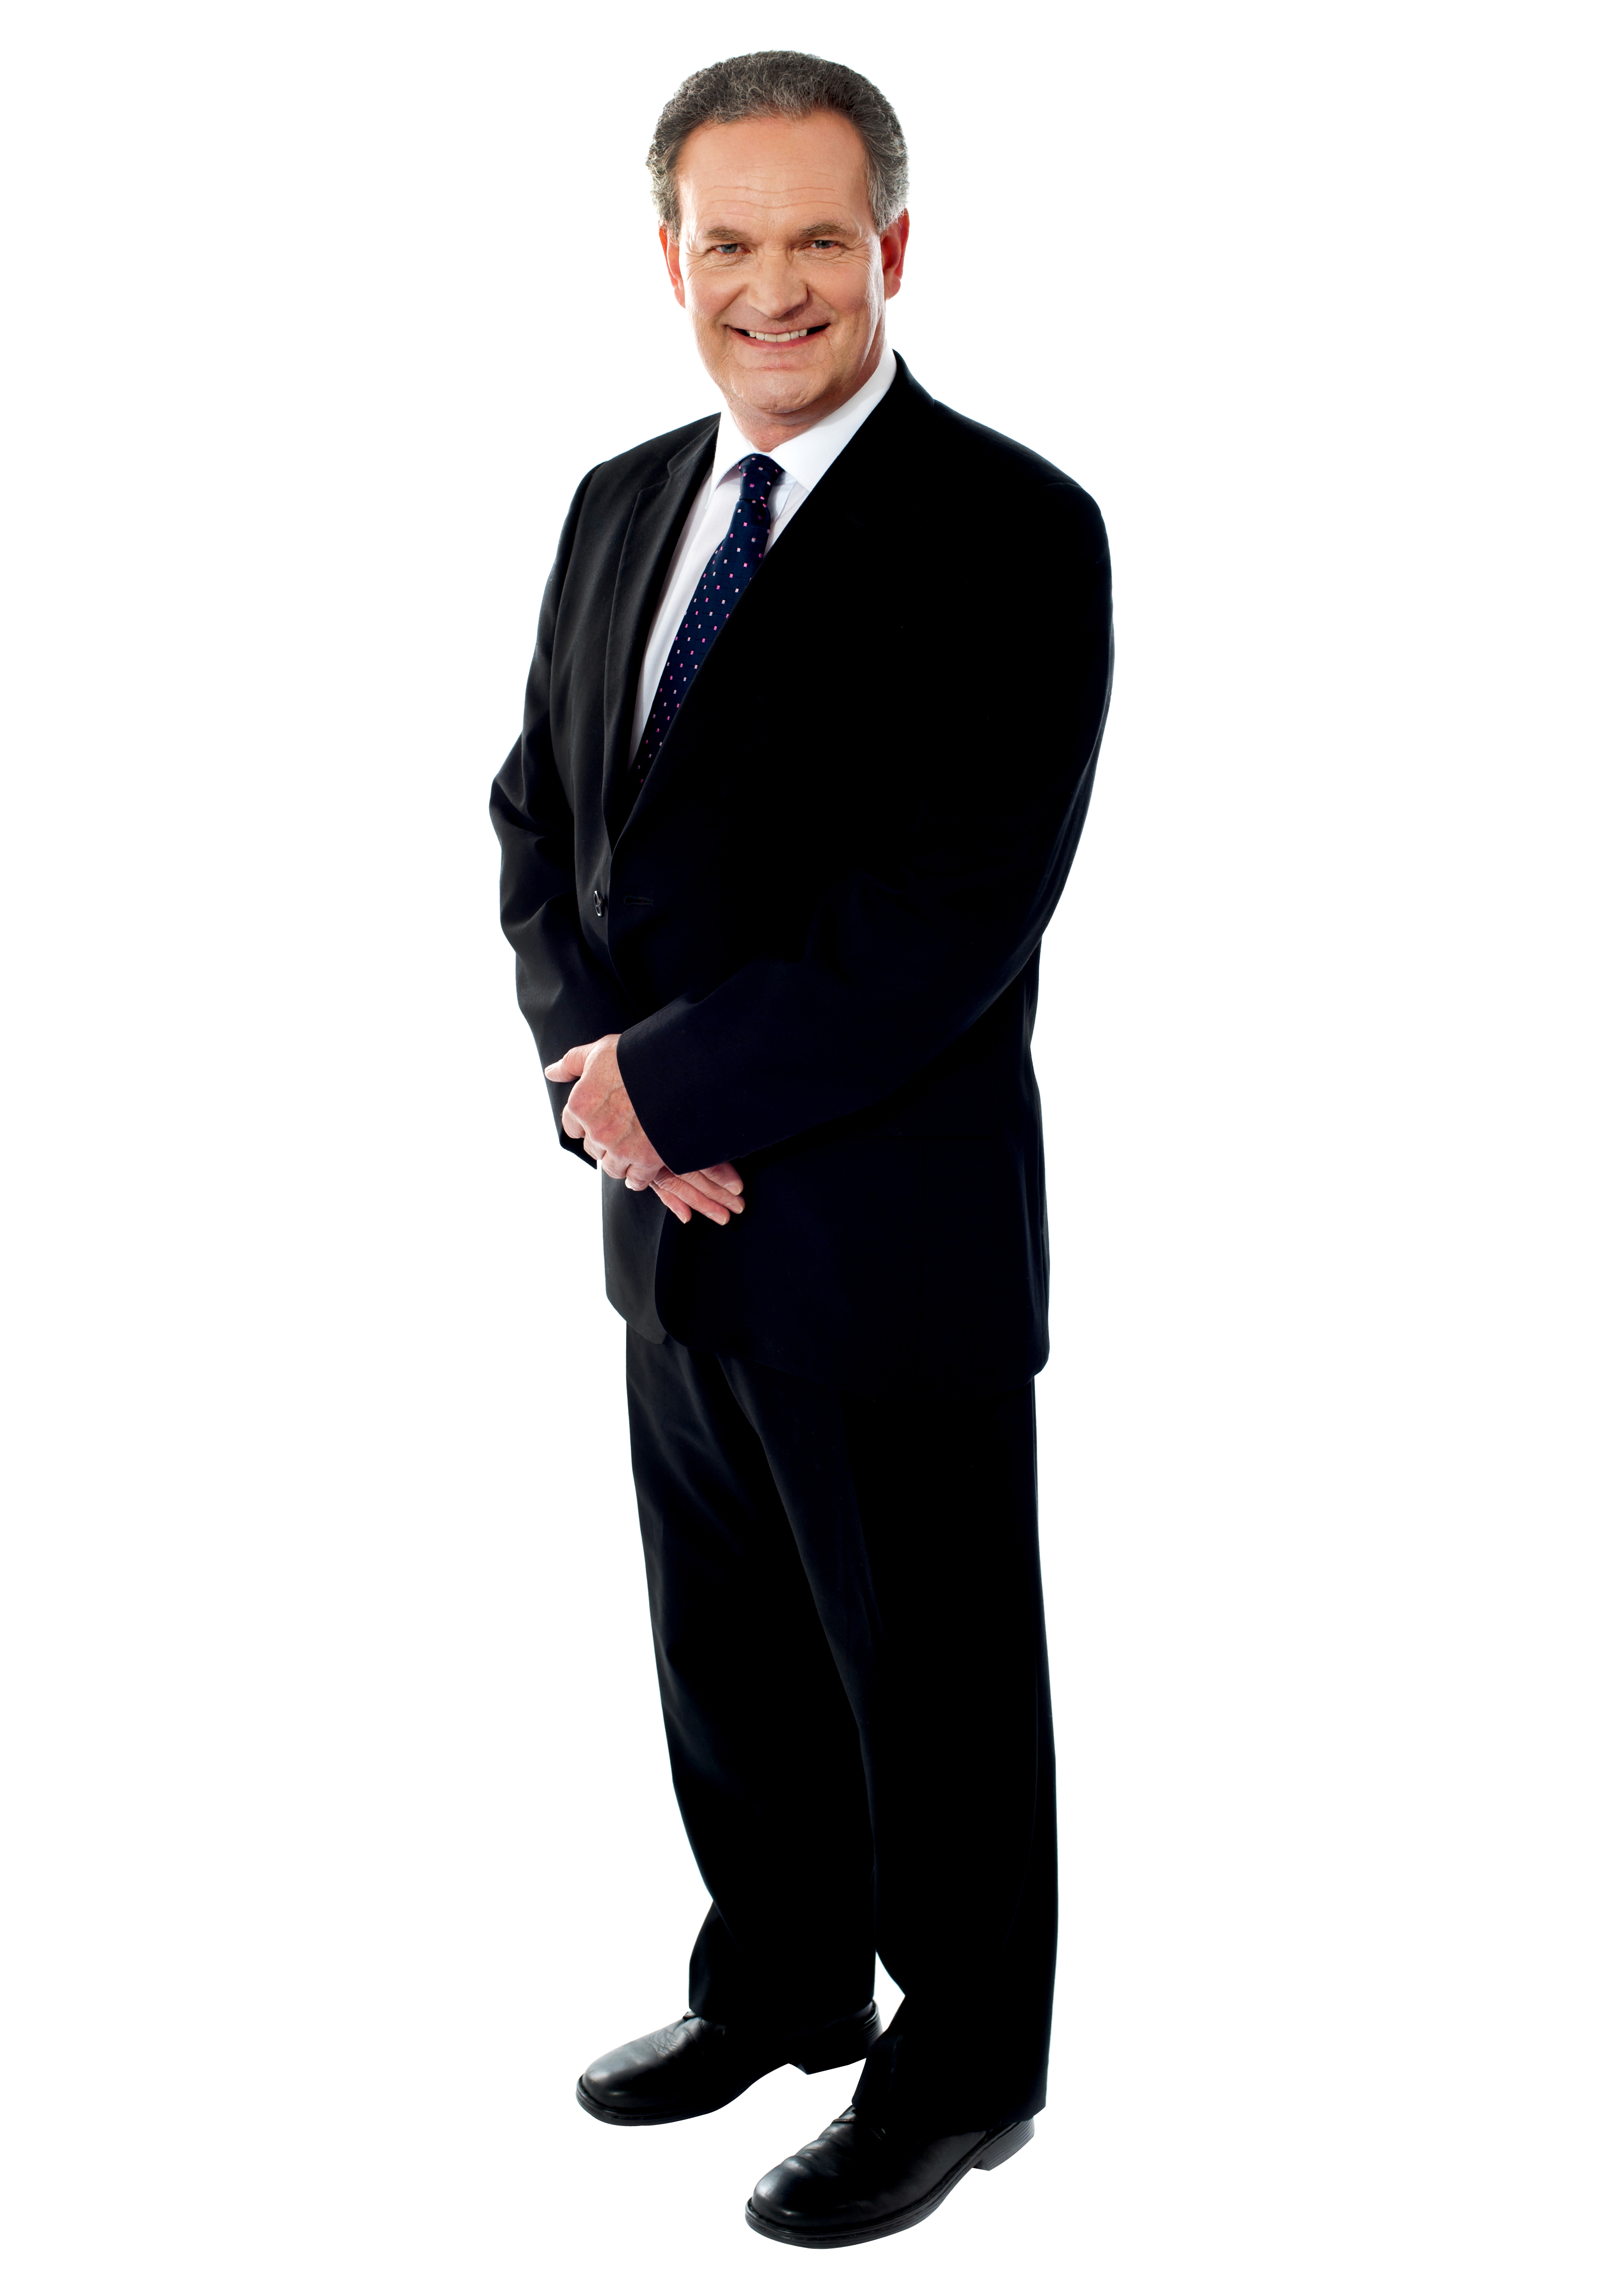 Male clipart man standing. Men in suit png